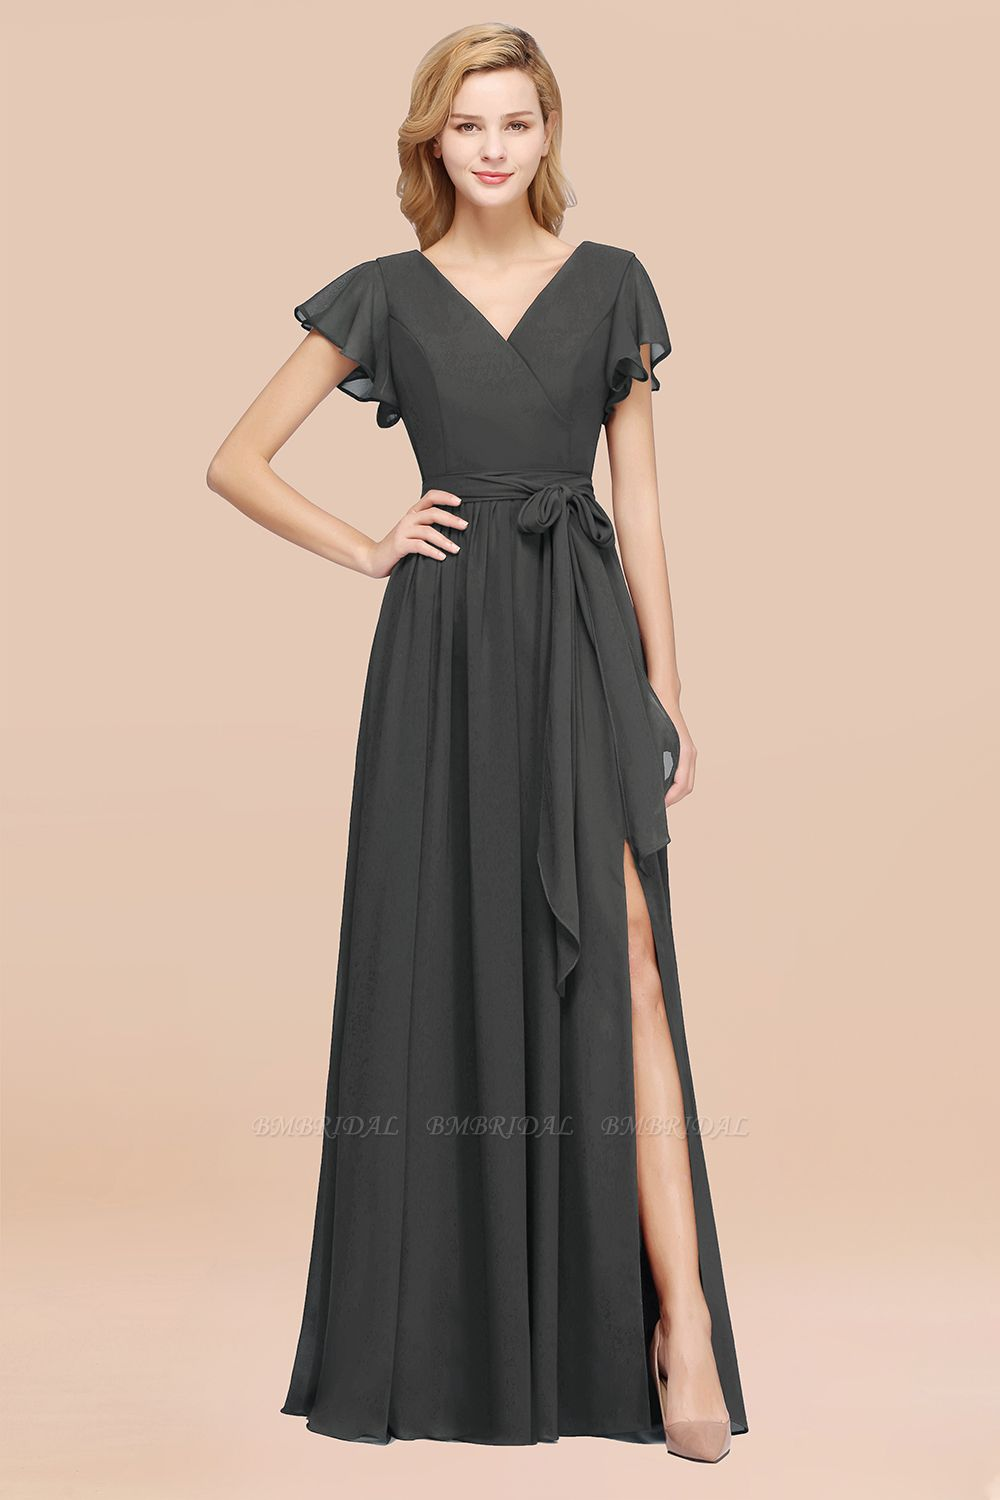 Try at Home Sample Bridesmaid Dress Dusty Rose Burgundy Steel Grey